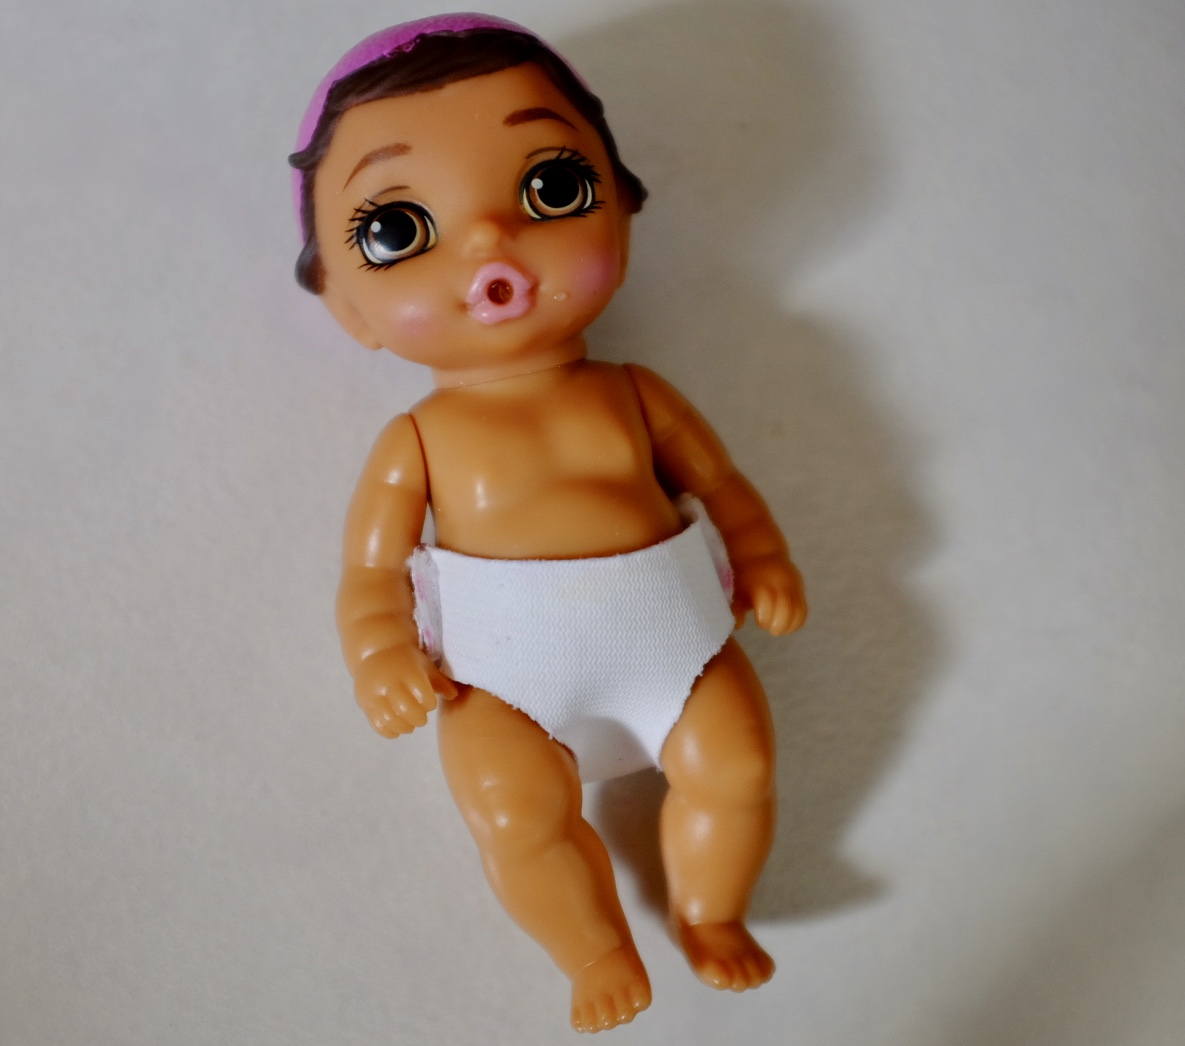 BABY doll in nappy